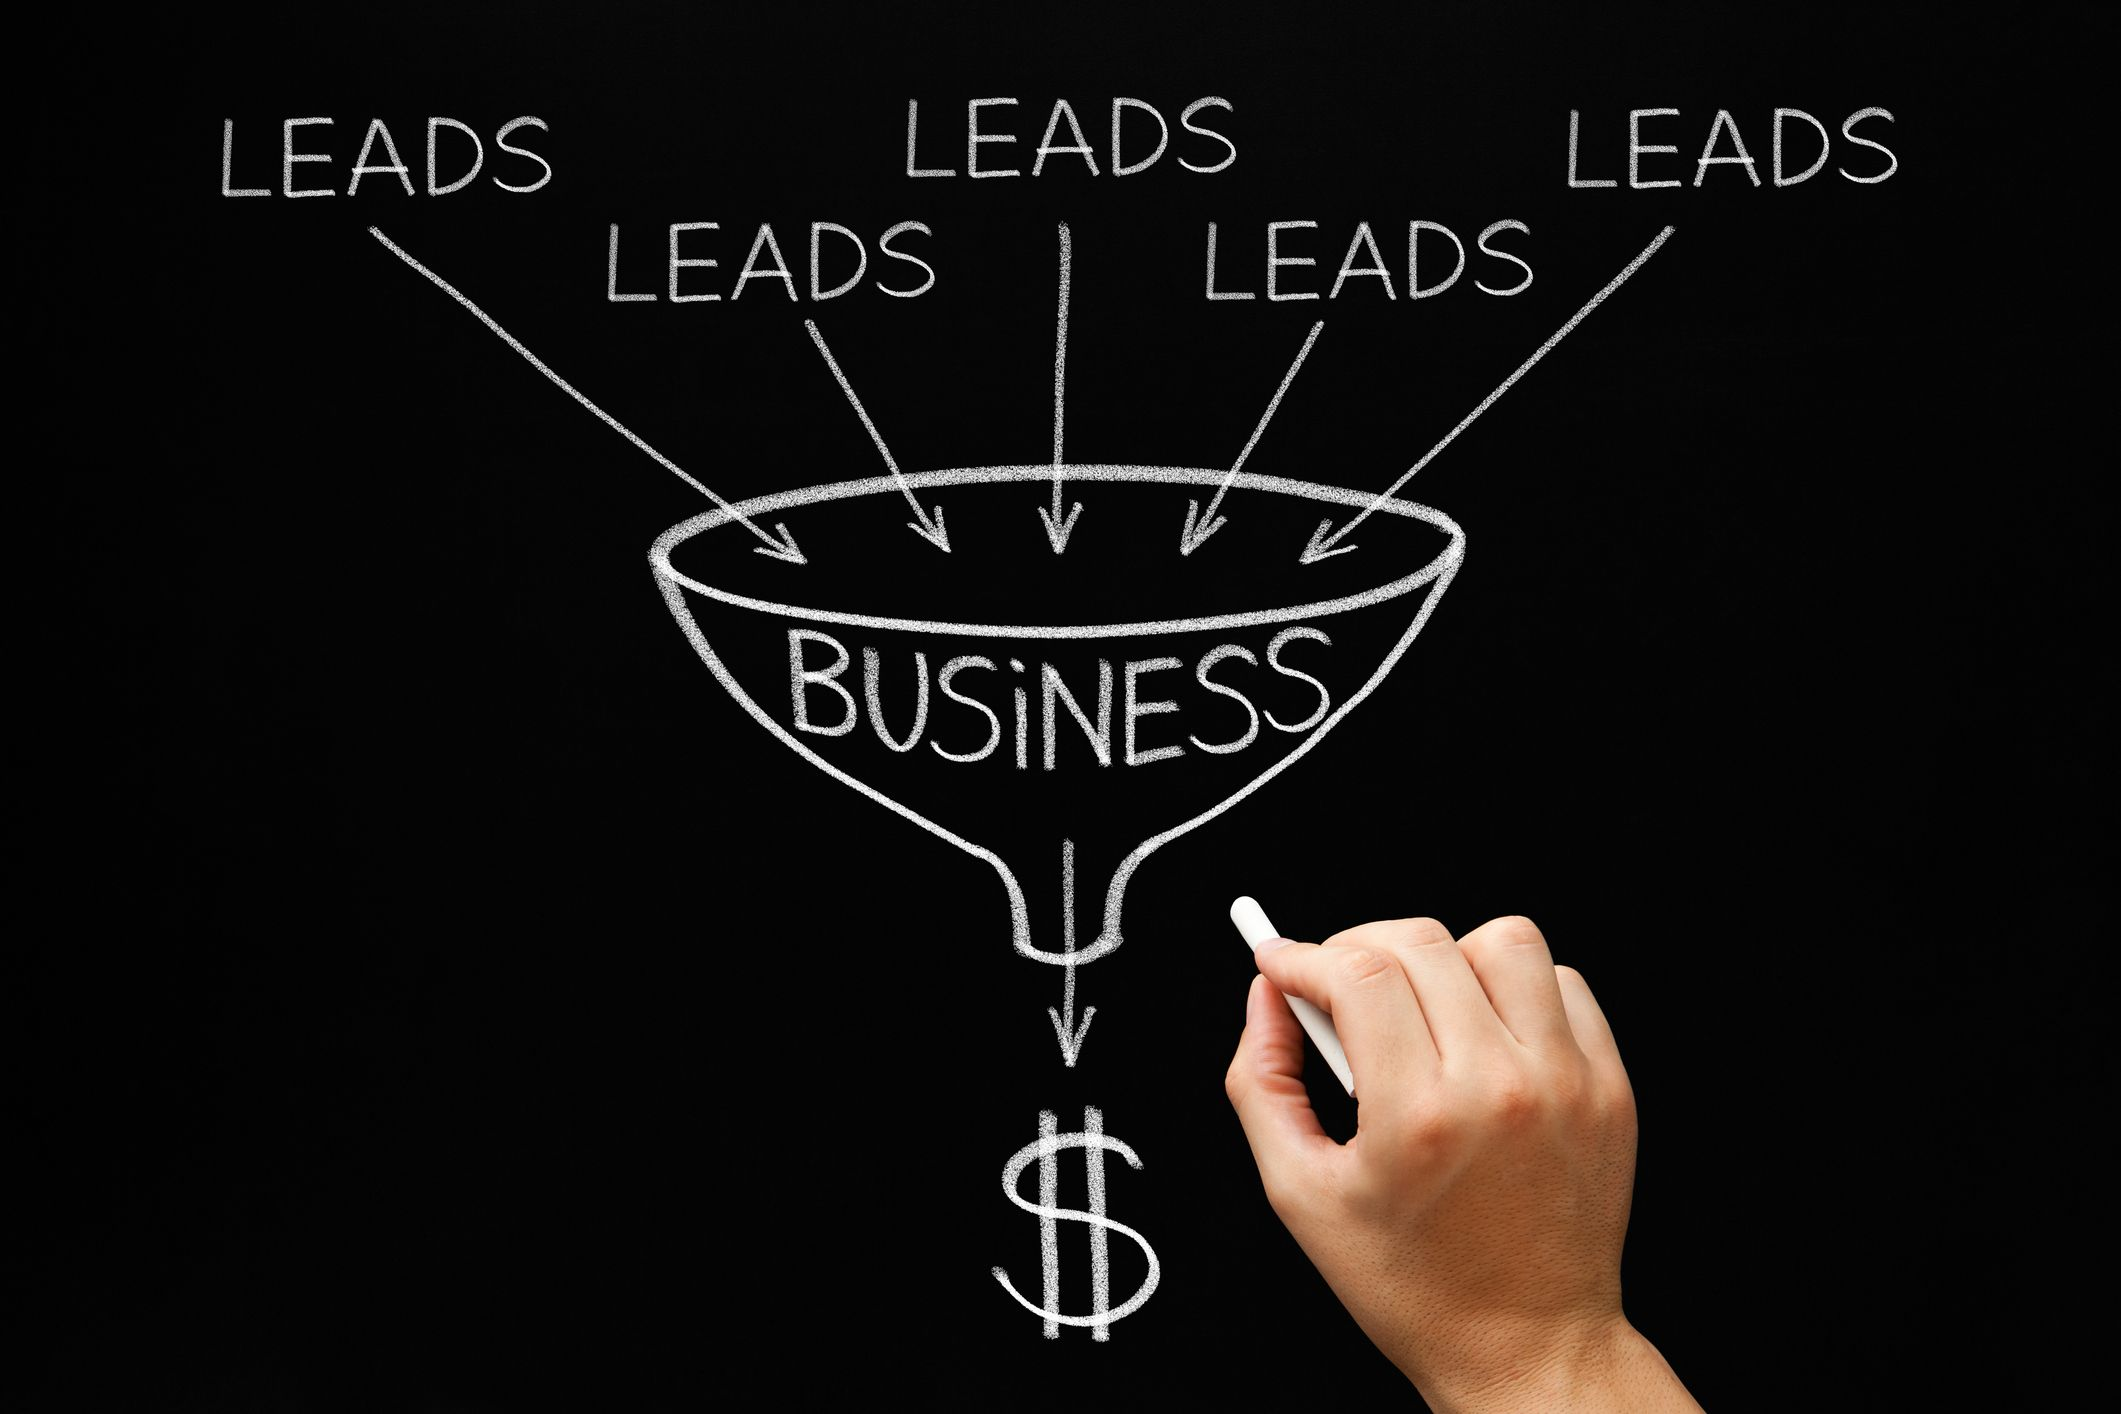 The Online Marketing Strategy Proven To Acquire New Leads, Sales & Customers